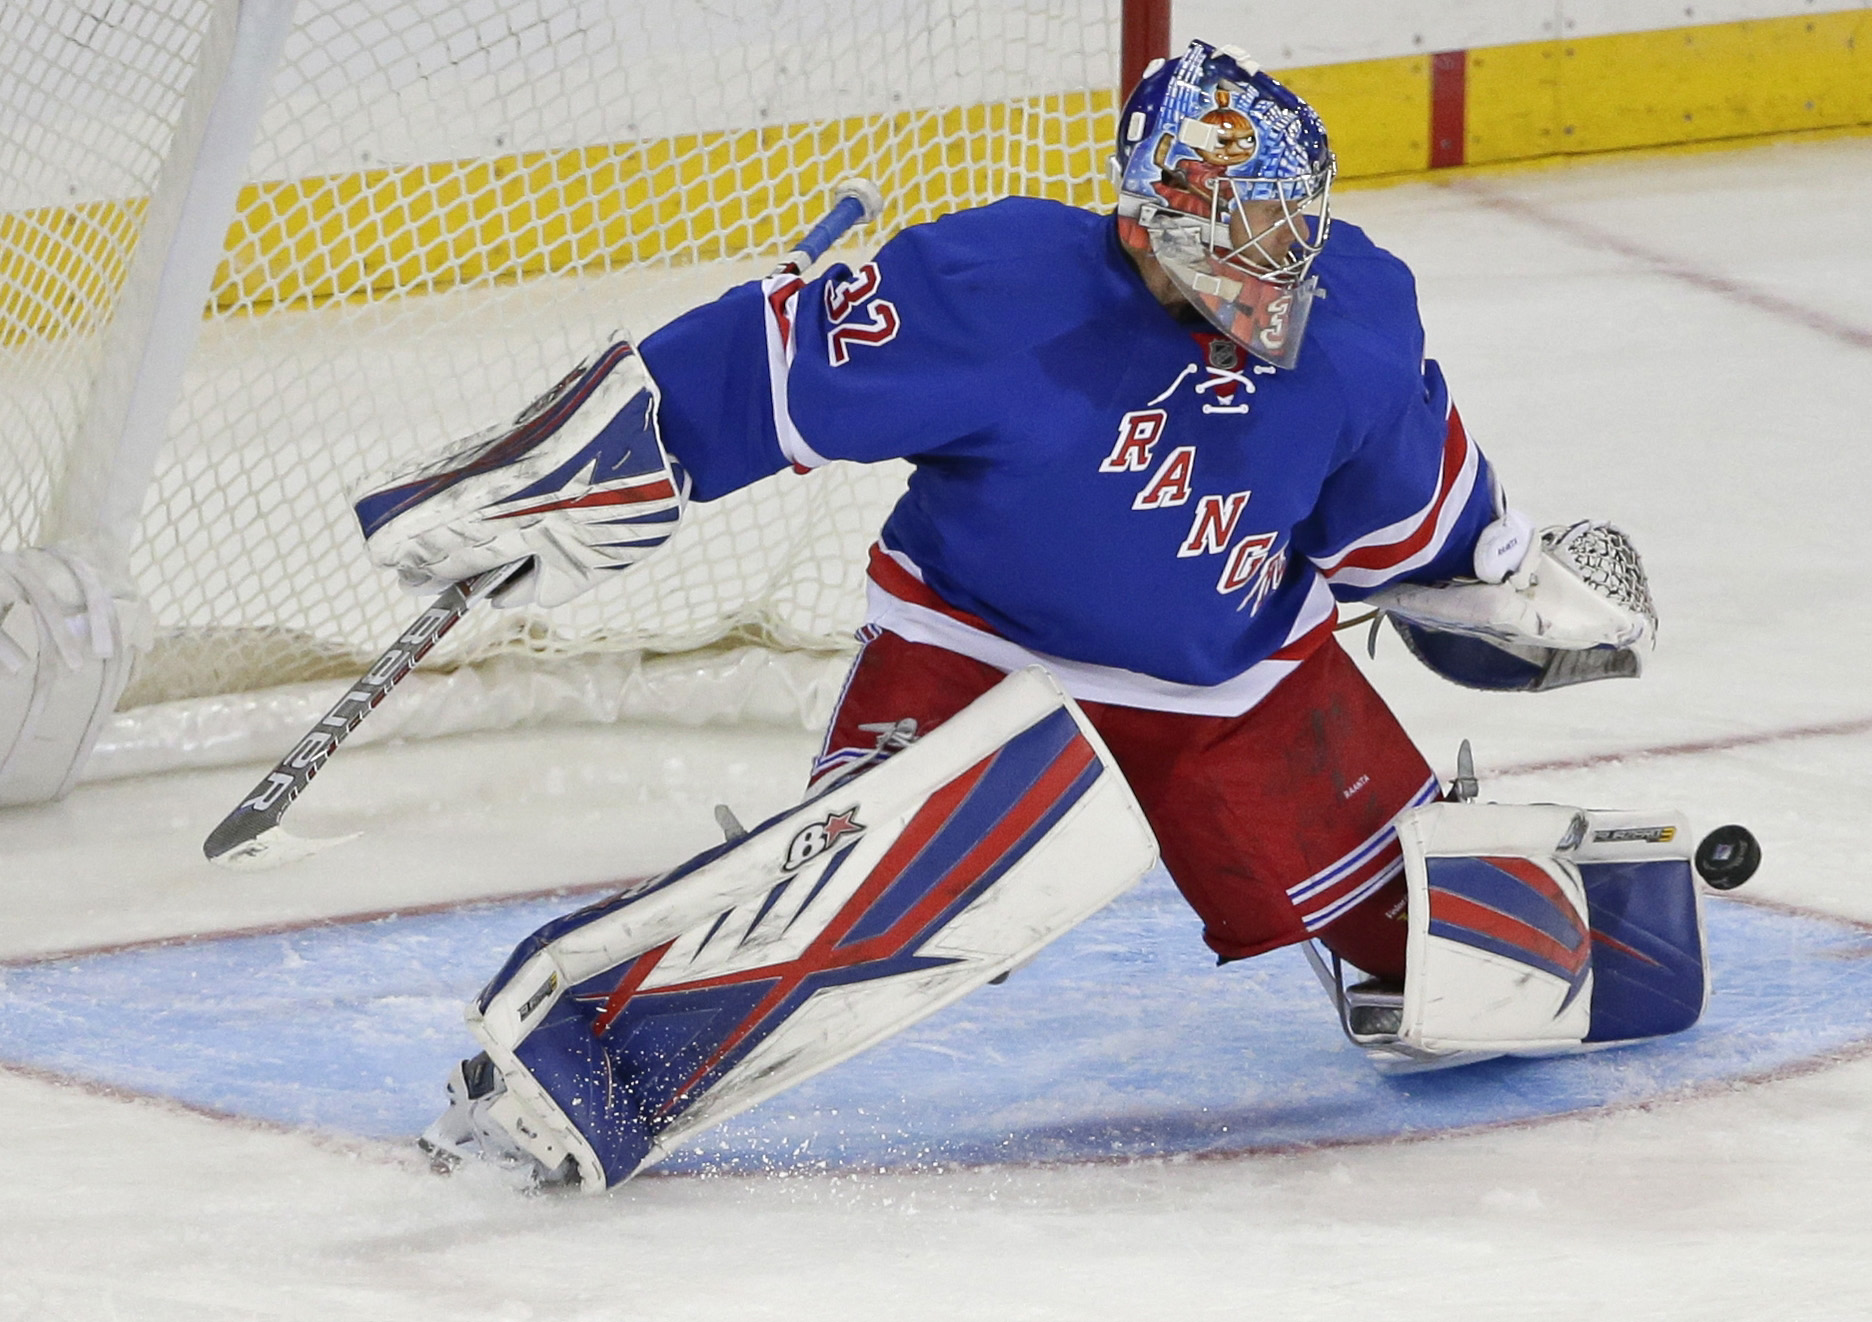 New York Rangers goalie Antti Raanta (32) stops a shot on the goal during the third period of an NHL hockey game against the San Jose Sharks Monday, Oct. 19, 2015, in New York. The Rangers won 4-0. (AP Photo/Frank Franklin II)